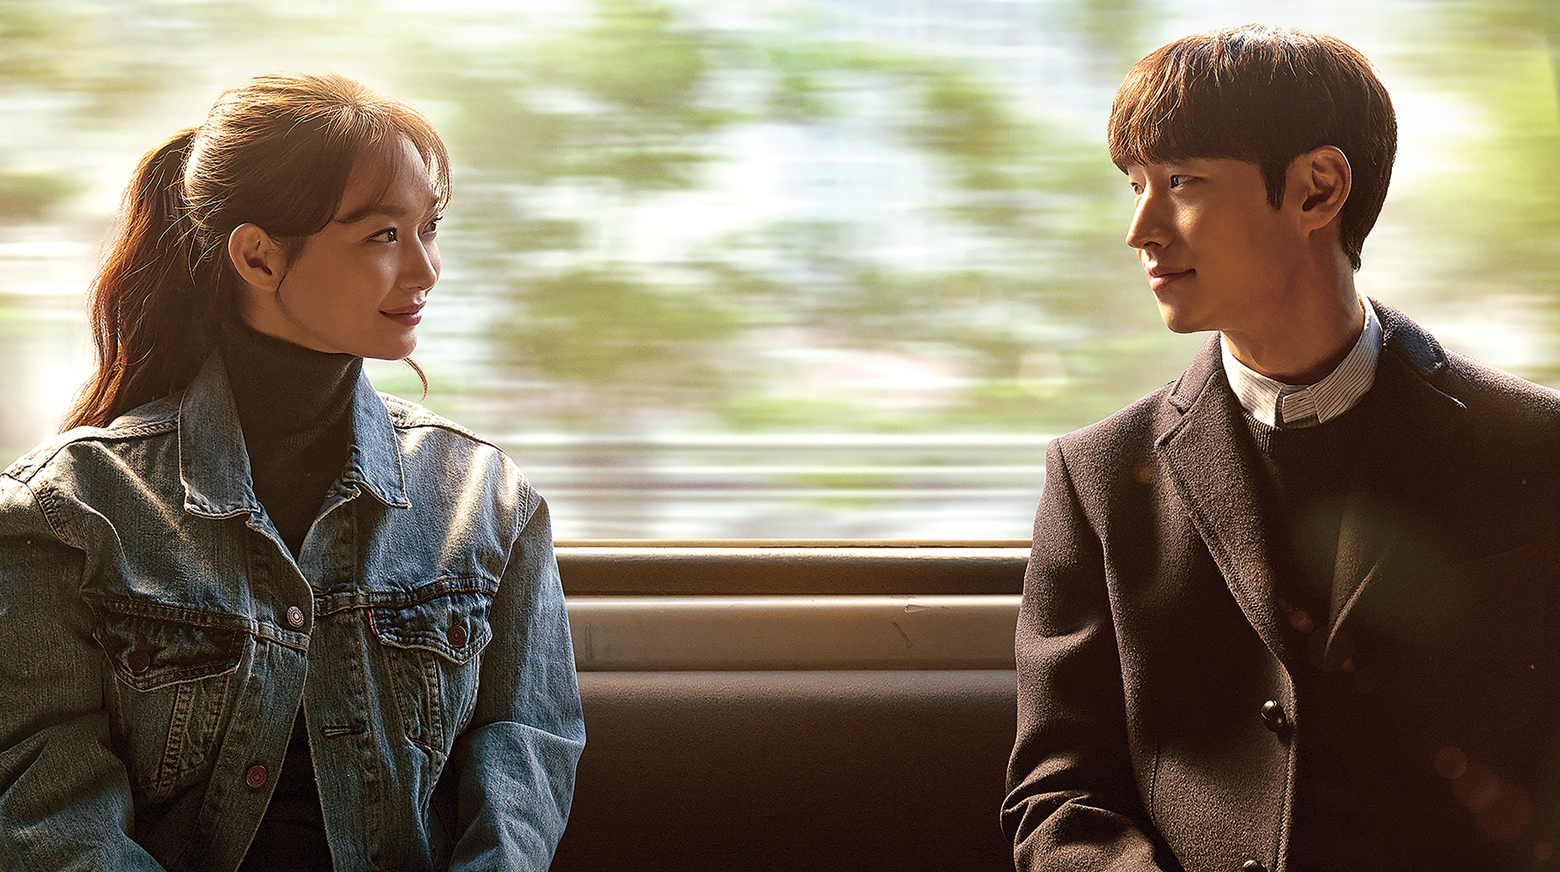 Tomorrow With You Episode 7